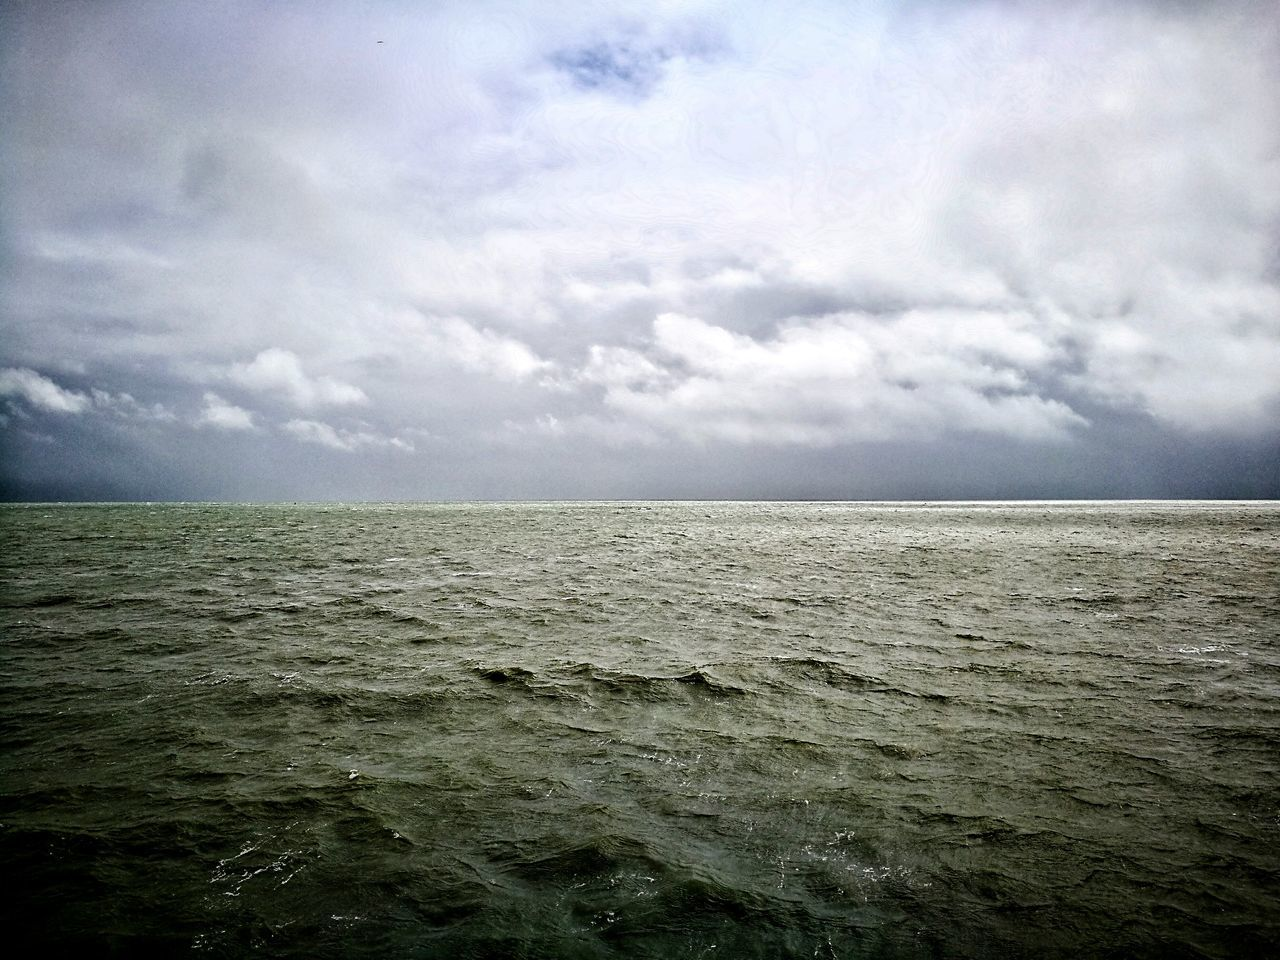 Cloud - Sky Sky Sea Weather Nature Outdoors Landscape Day Scenics No People Storm Cloud Tranquility Water Beach Horizon Over Water Beauty In Nature Sea And Sky Power Of The Sea Deal Kent England Deal Pier The Great Outdoors - 2017 EyeEm Awards